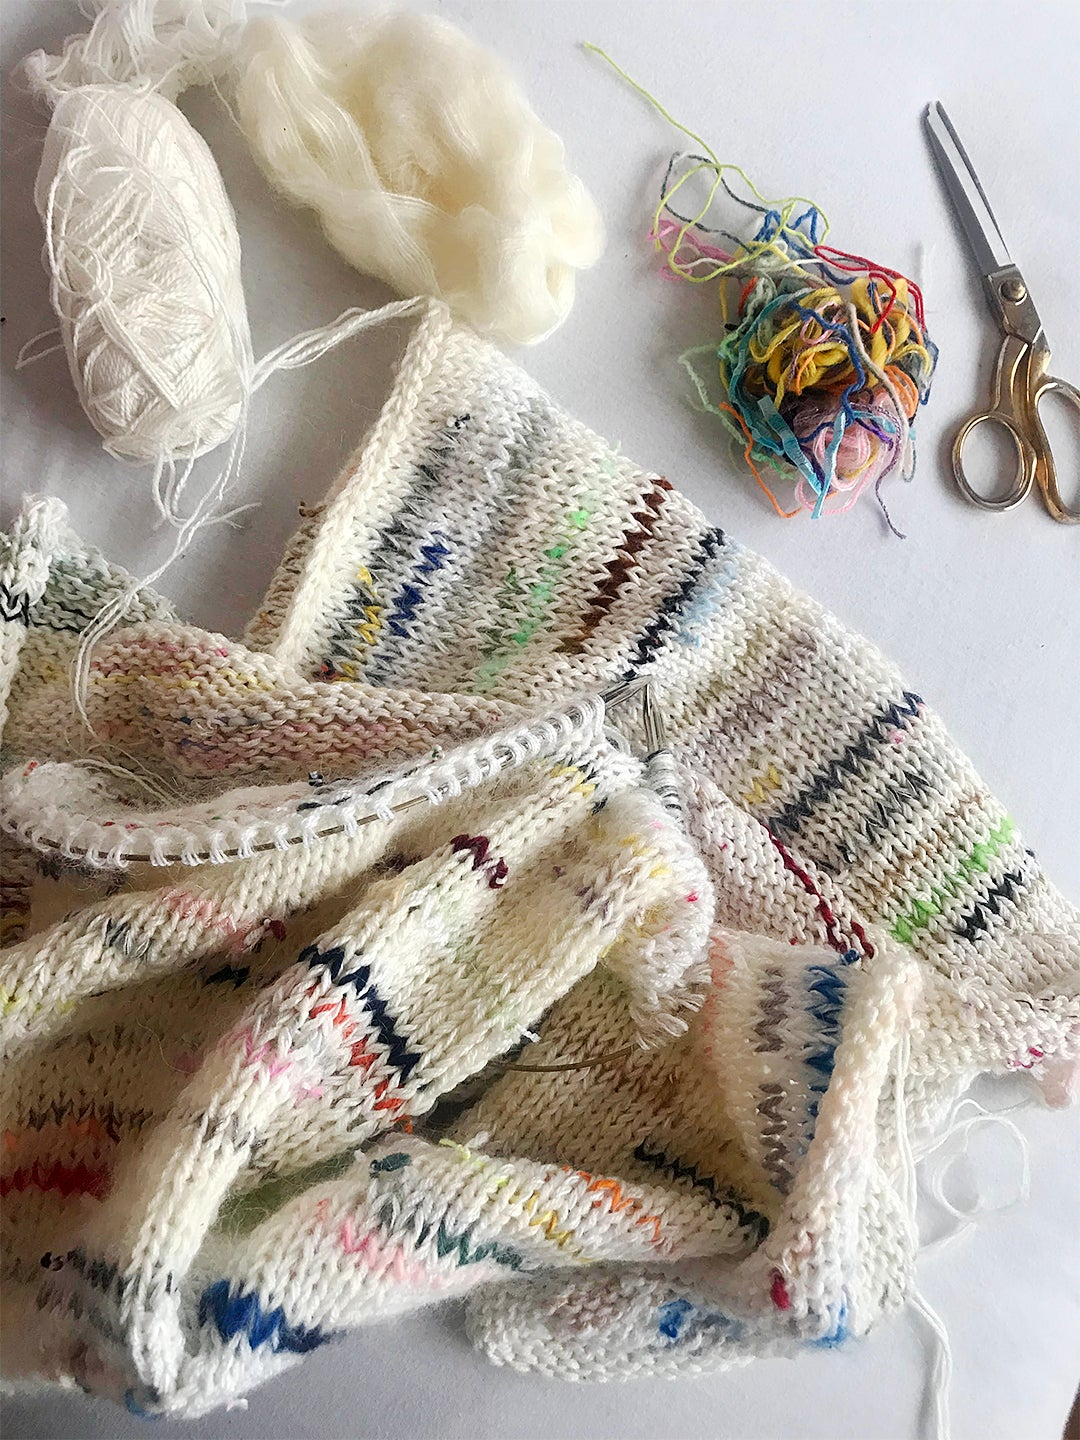 With Her Alone Together Sweater Laerke Bagger Hopes To Bring Crafters Together